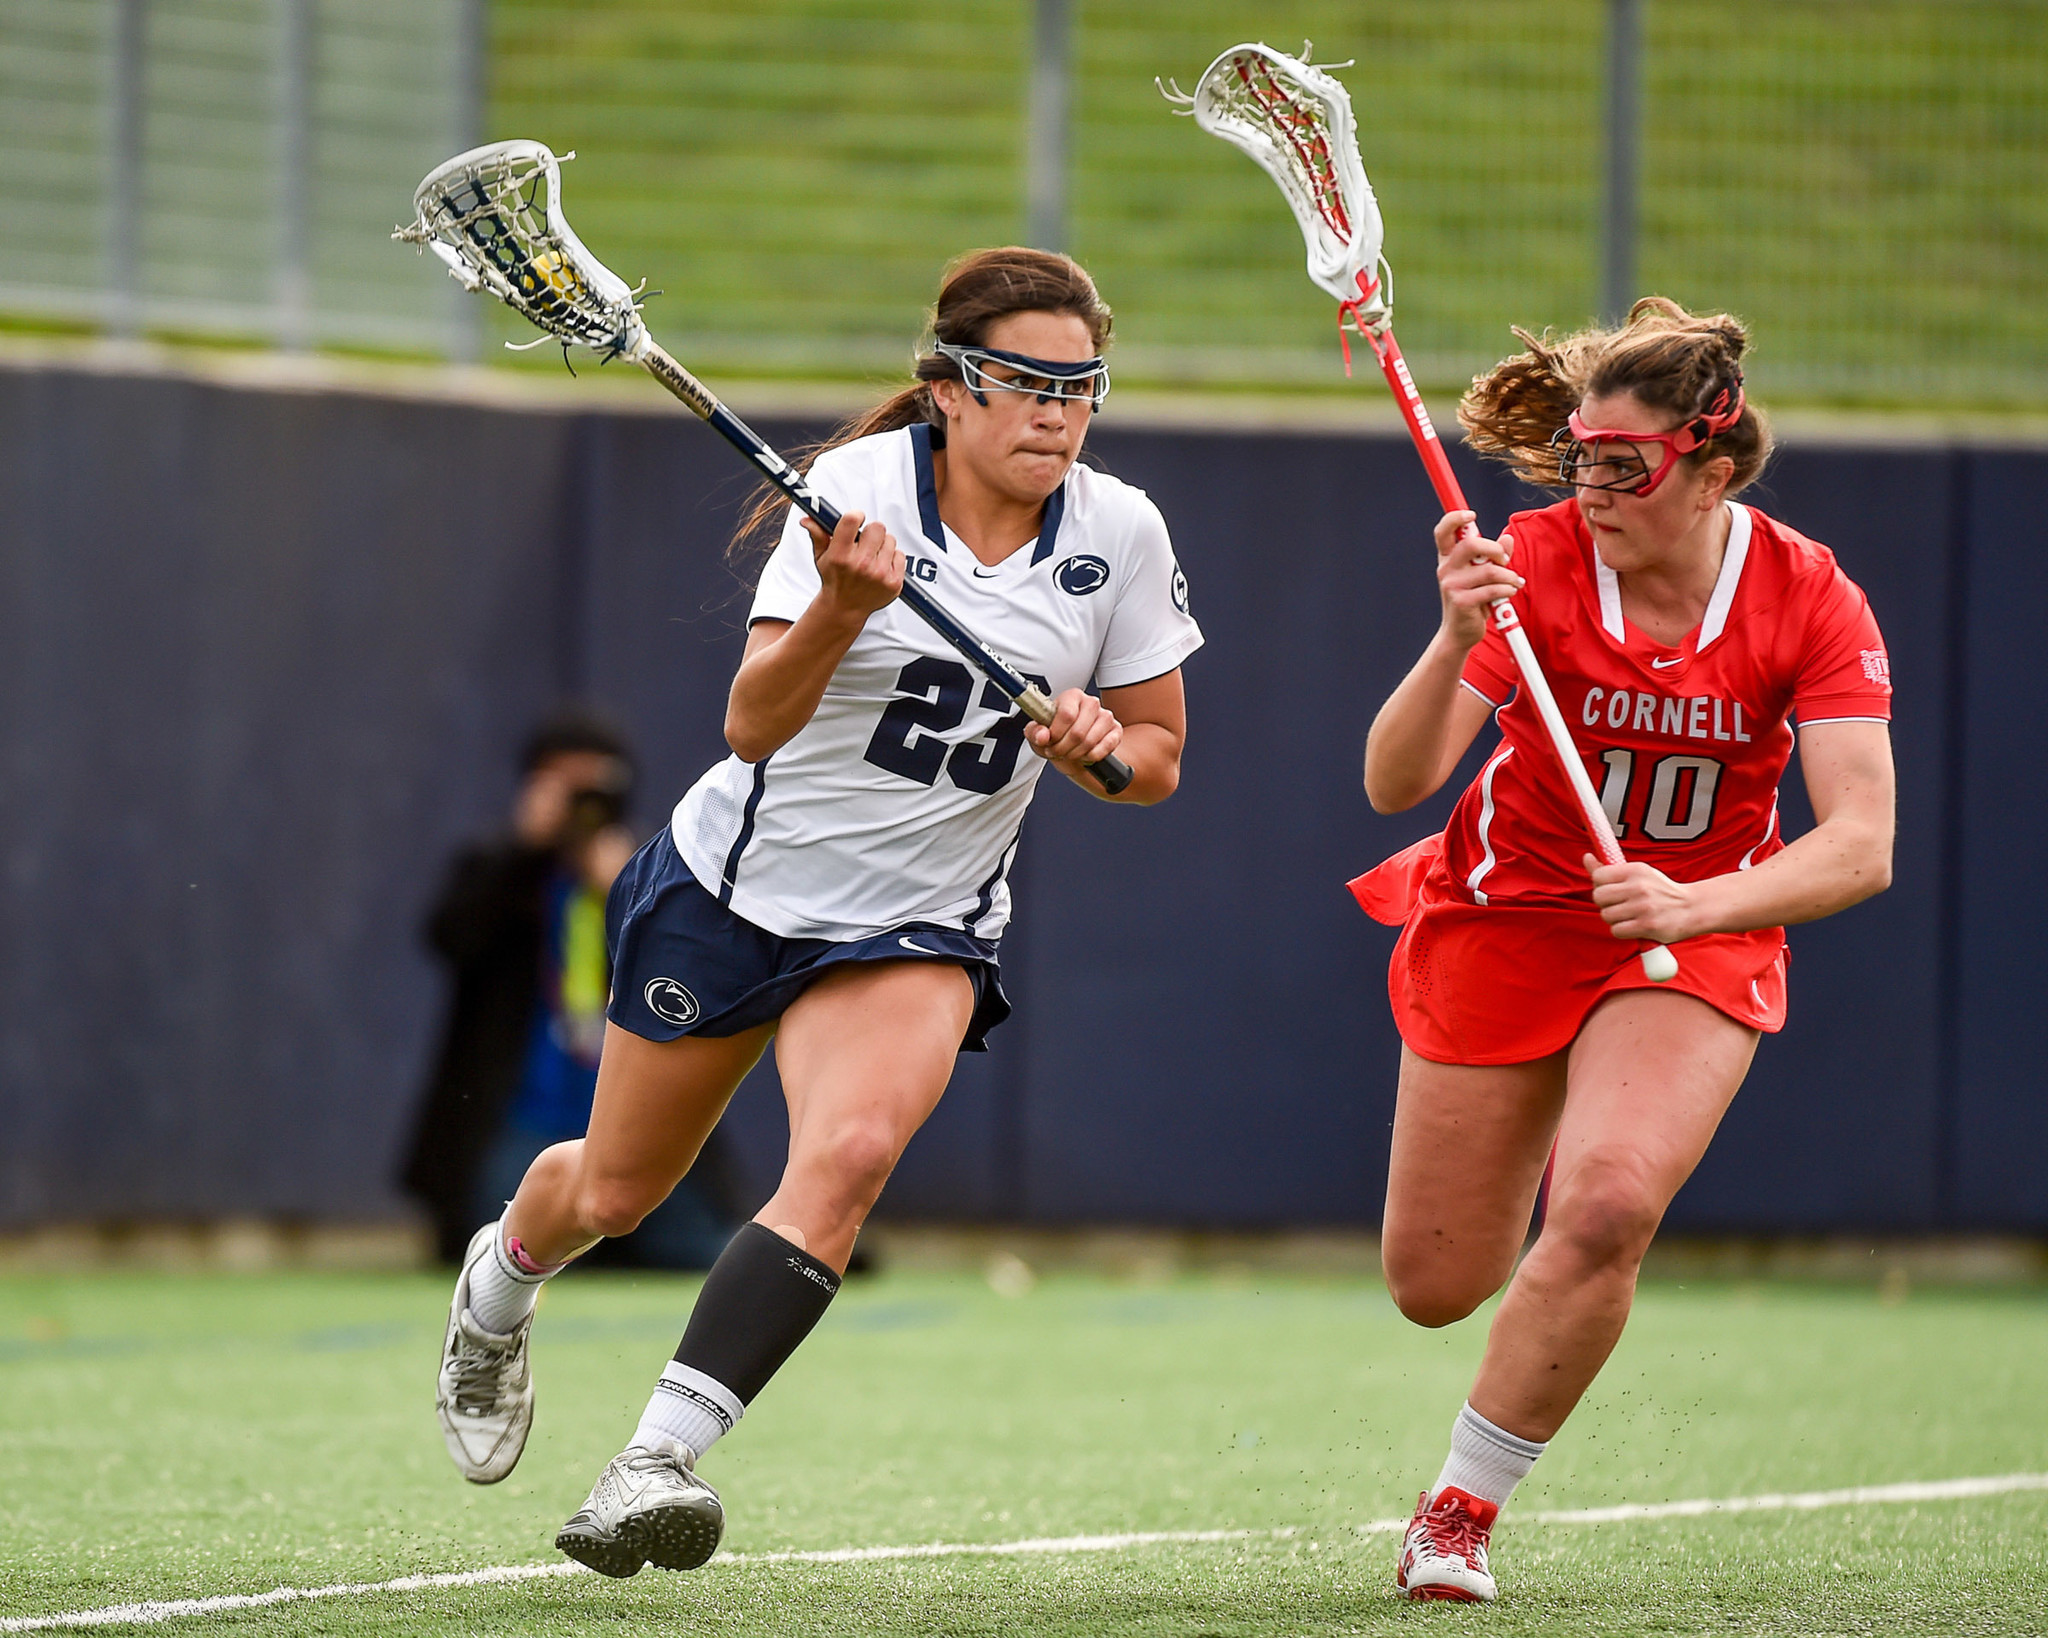 Women's lacrosse notes: Local trio helps Penn State to hot ...